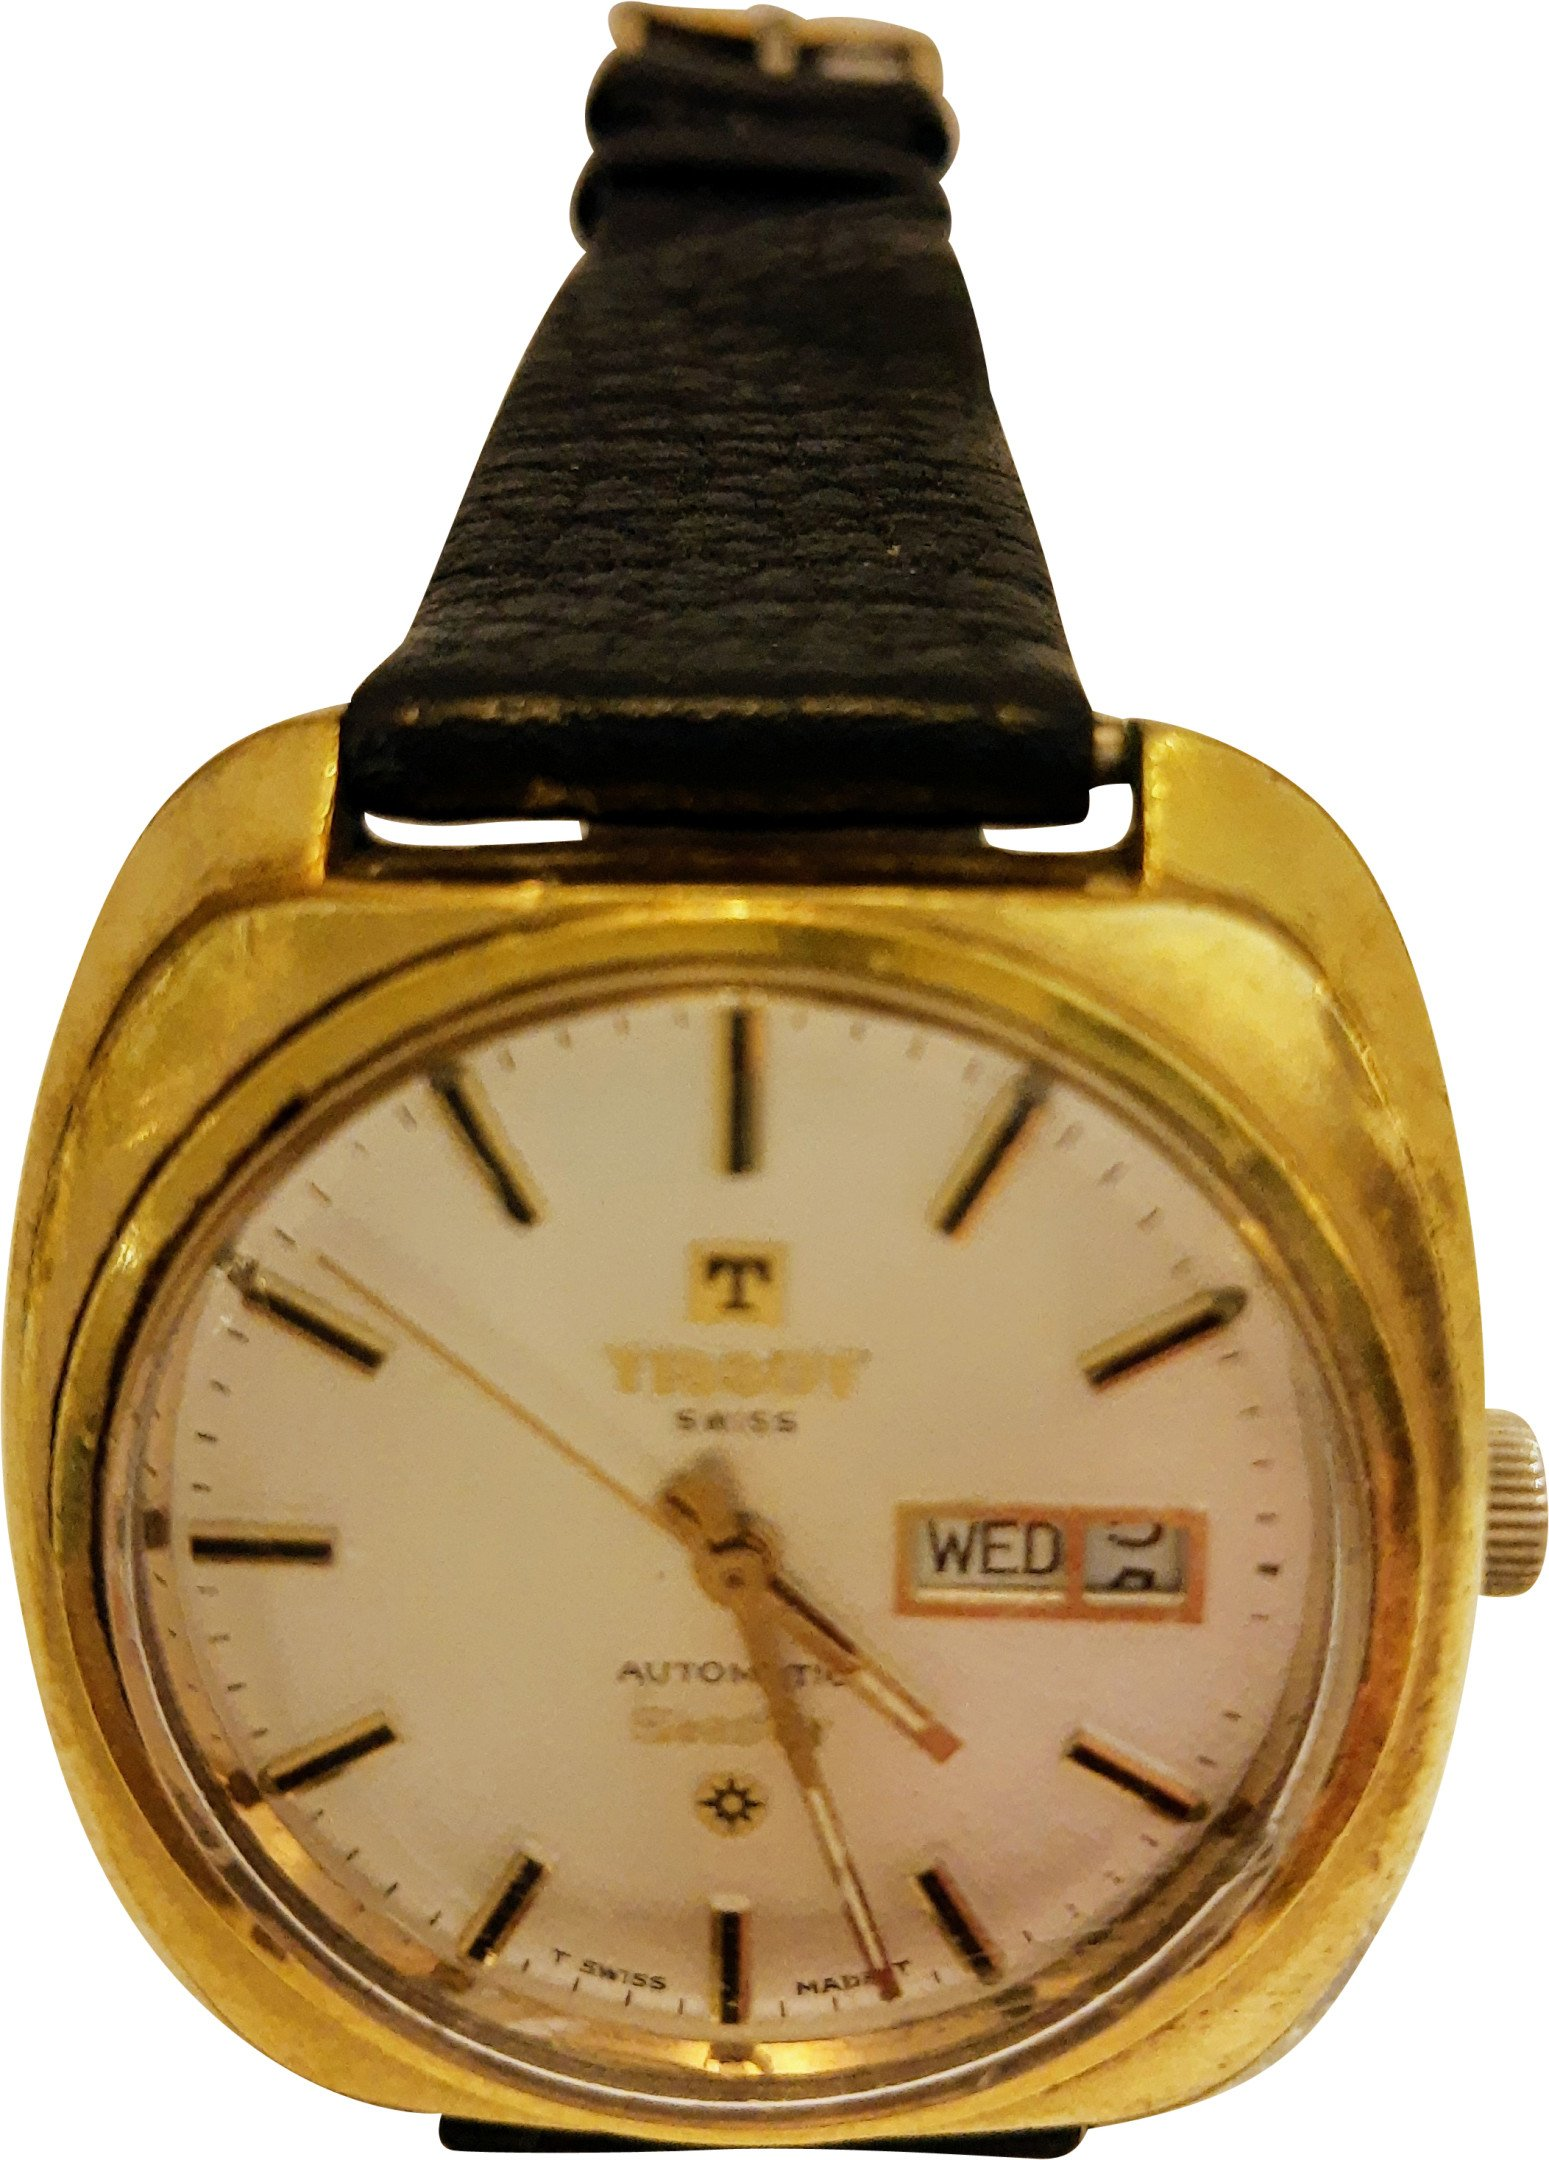 Watch, Tissot, Switzerland, 1960s